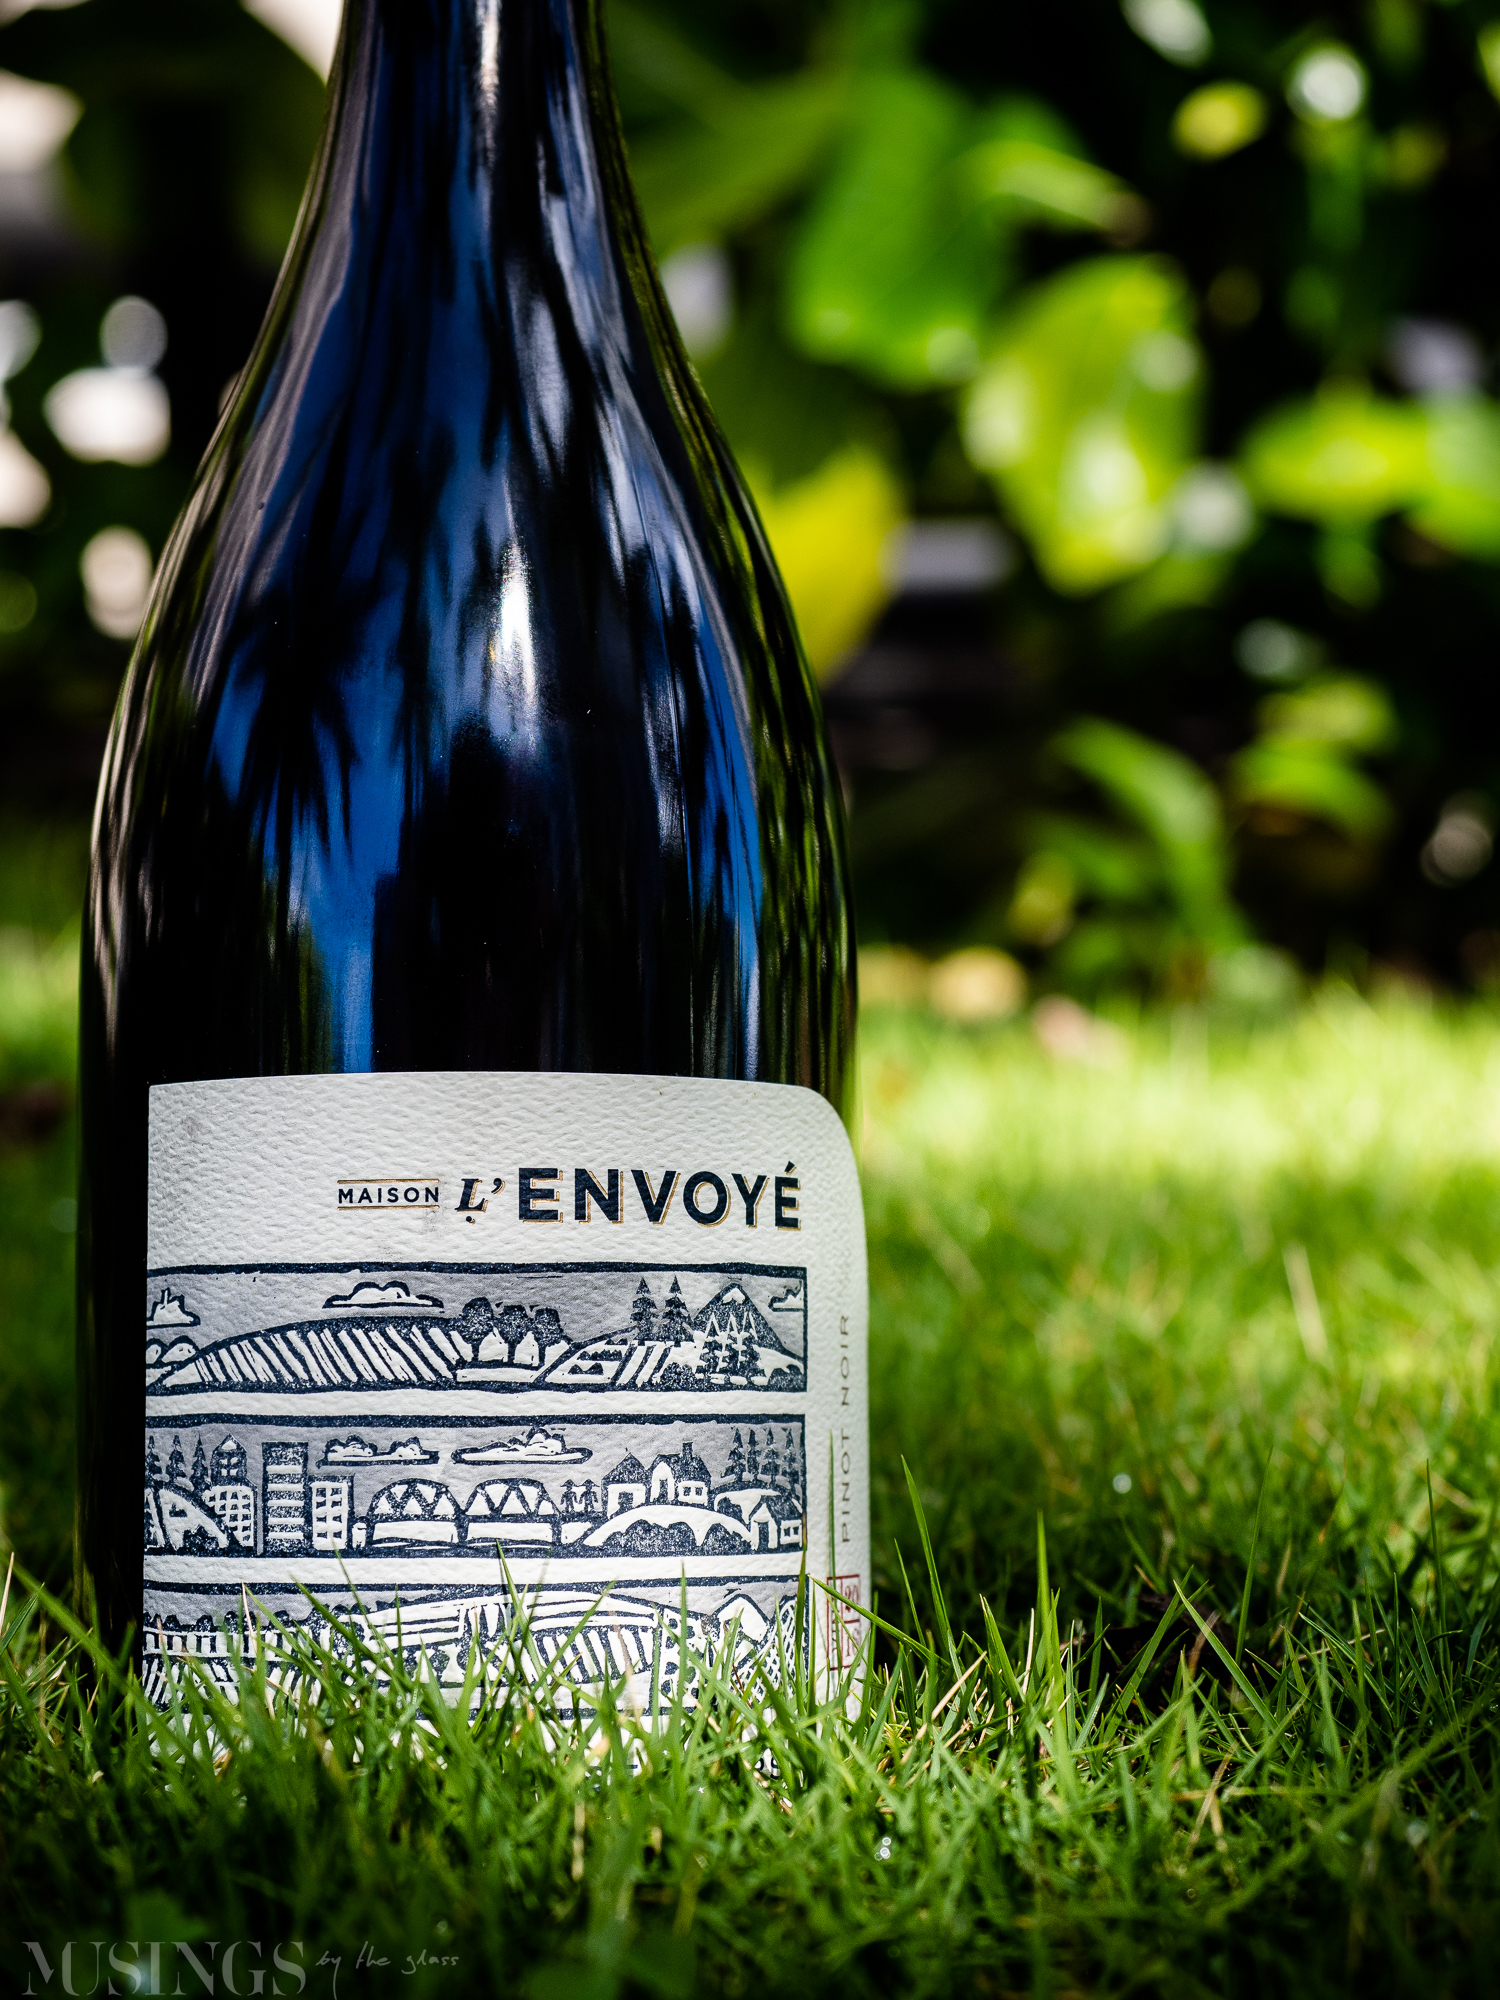 Musings by the Glass - Maison l'Envoyé Pinot Noir Red Wine from Willamette Valley, Oregon